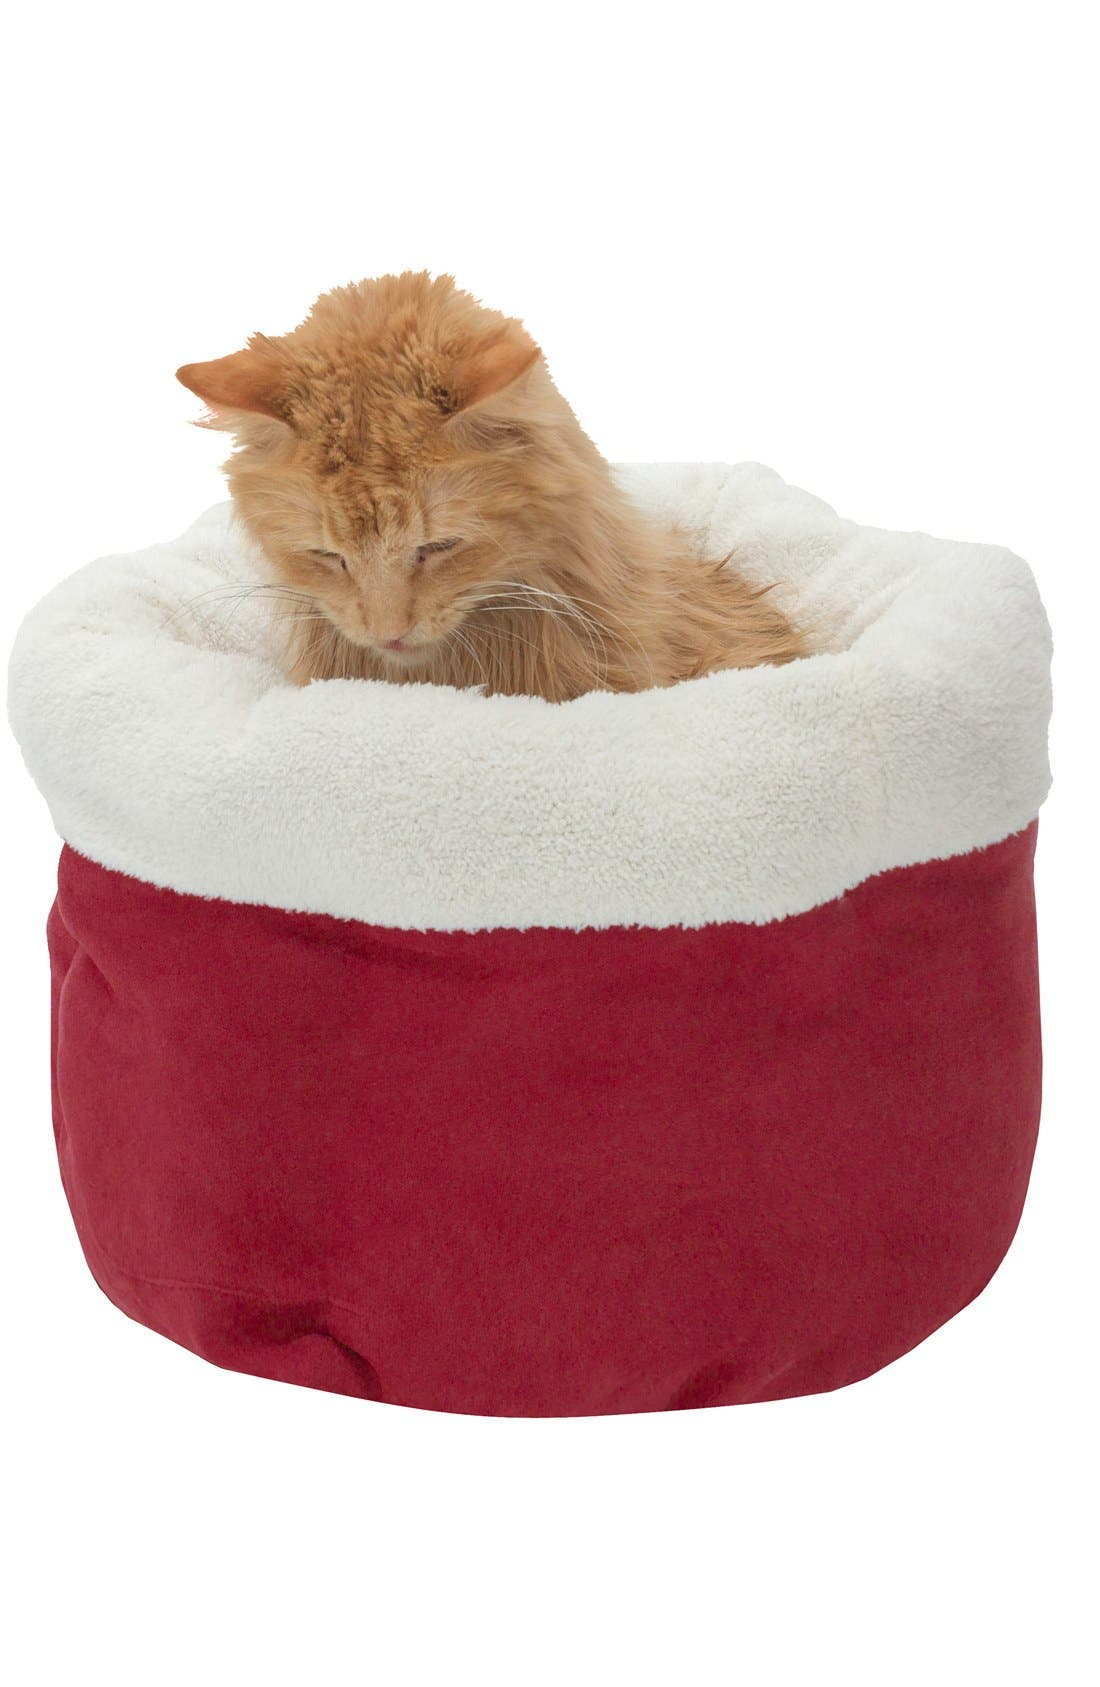 Alternate Image 1 Selected - Duck River Textile Barclay Pet Bed